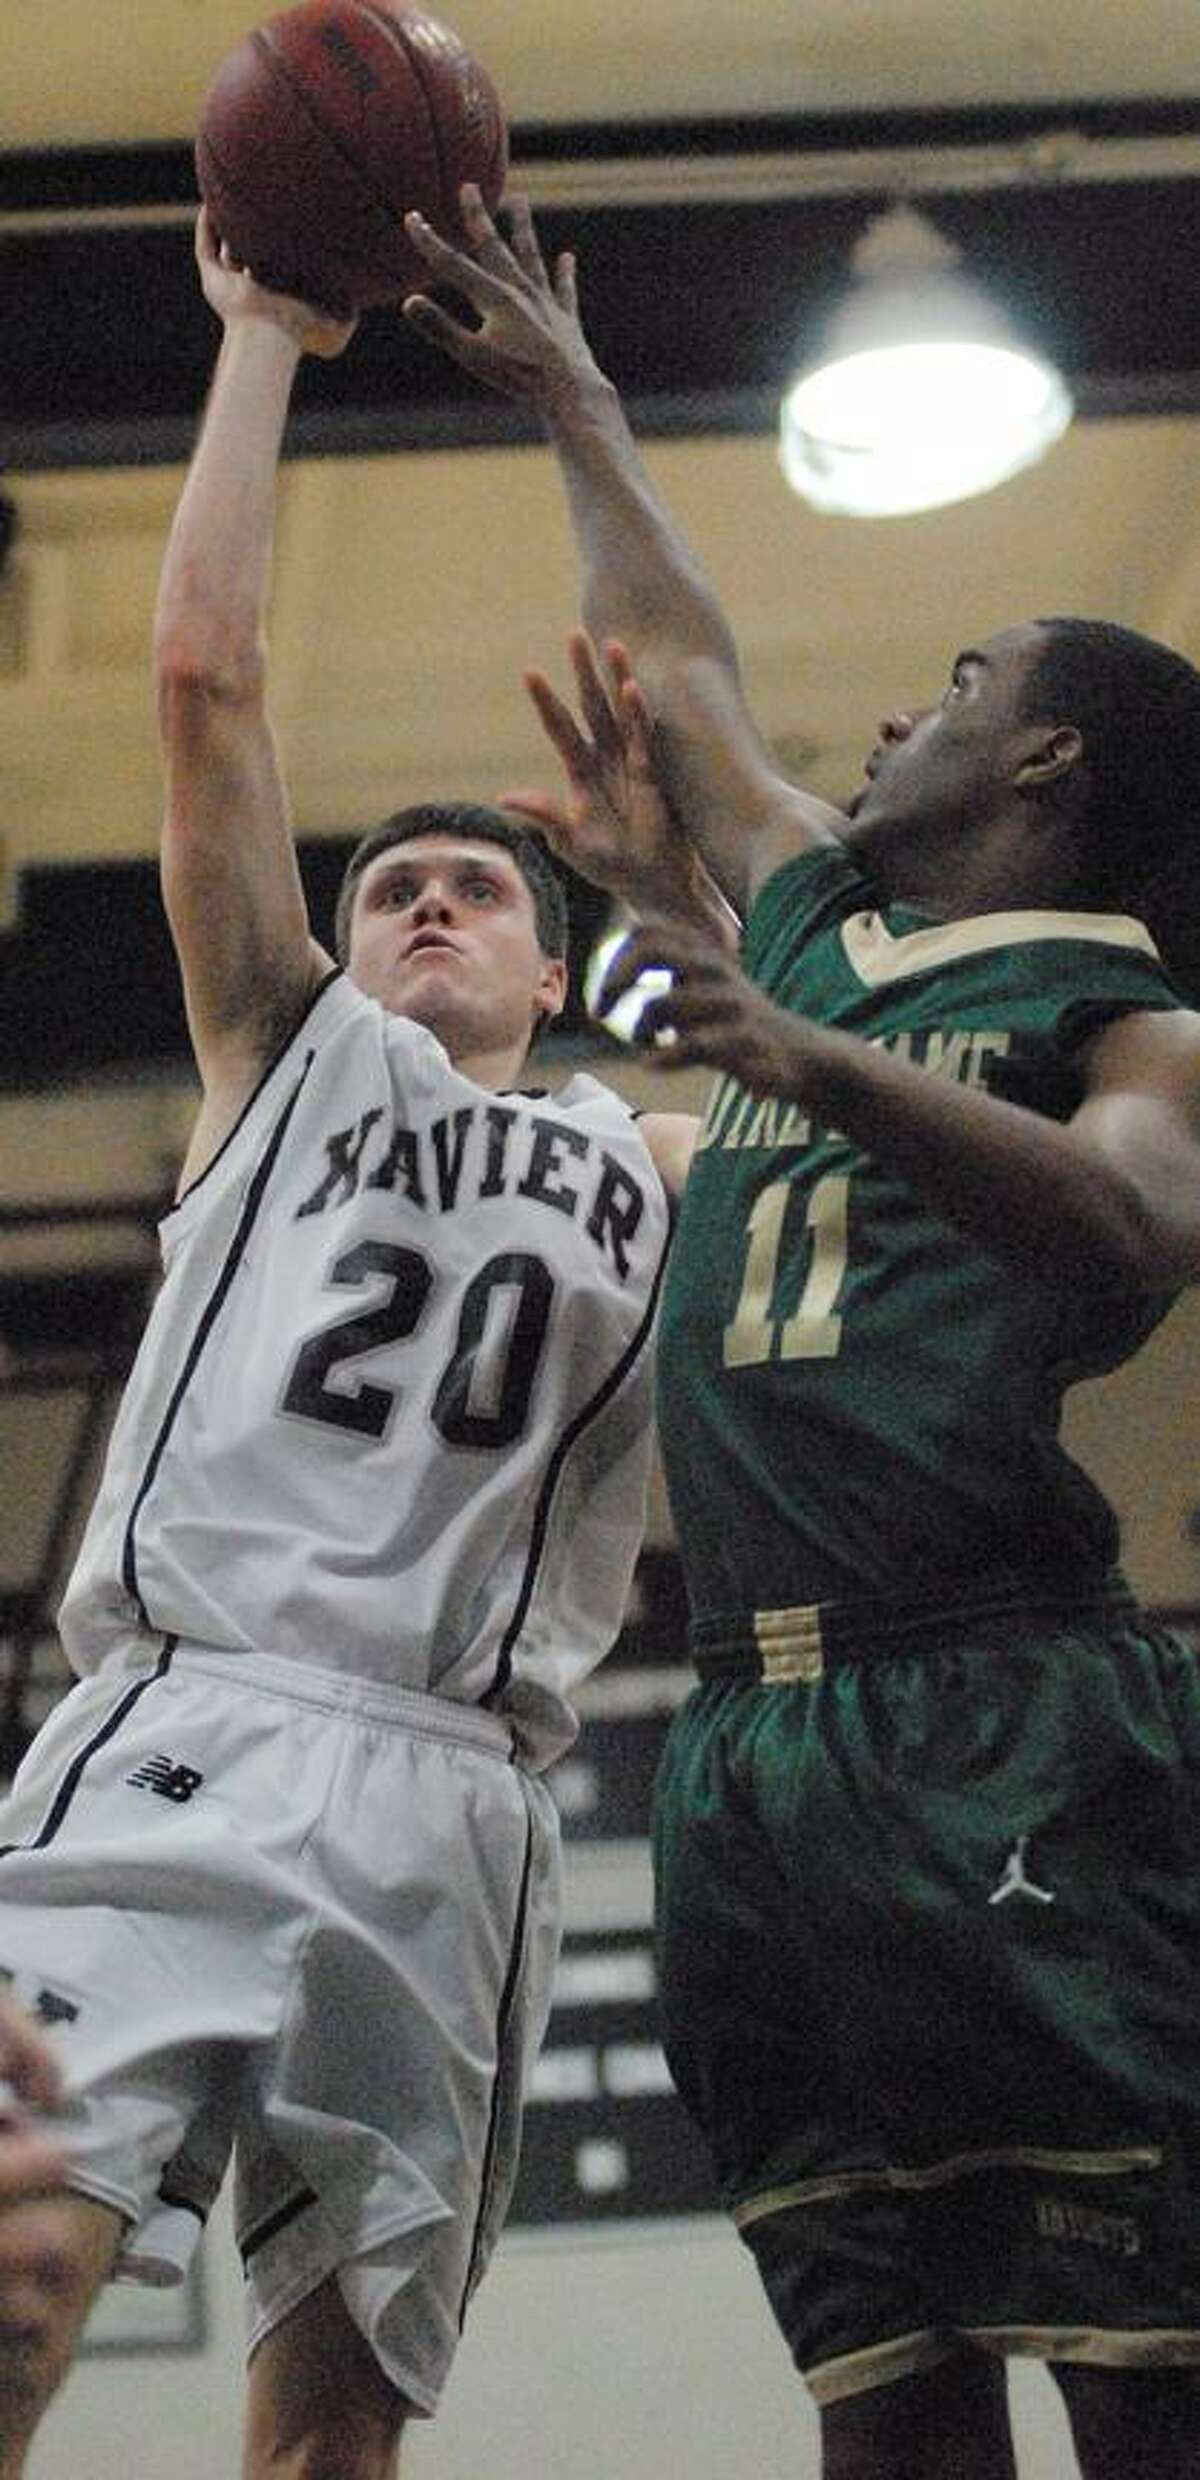 Catherine Avalone/The Middletown Press Xavier senior captain James Sullivan elevates for a shot as Notre Dame's Kevin Walton defends Tuesday night in Middletown. Notre Dame defeated Xavier 55-52.